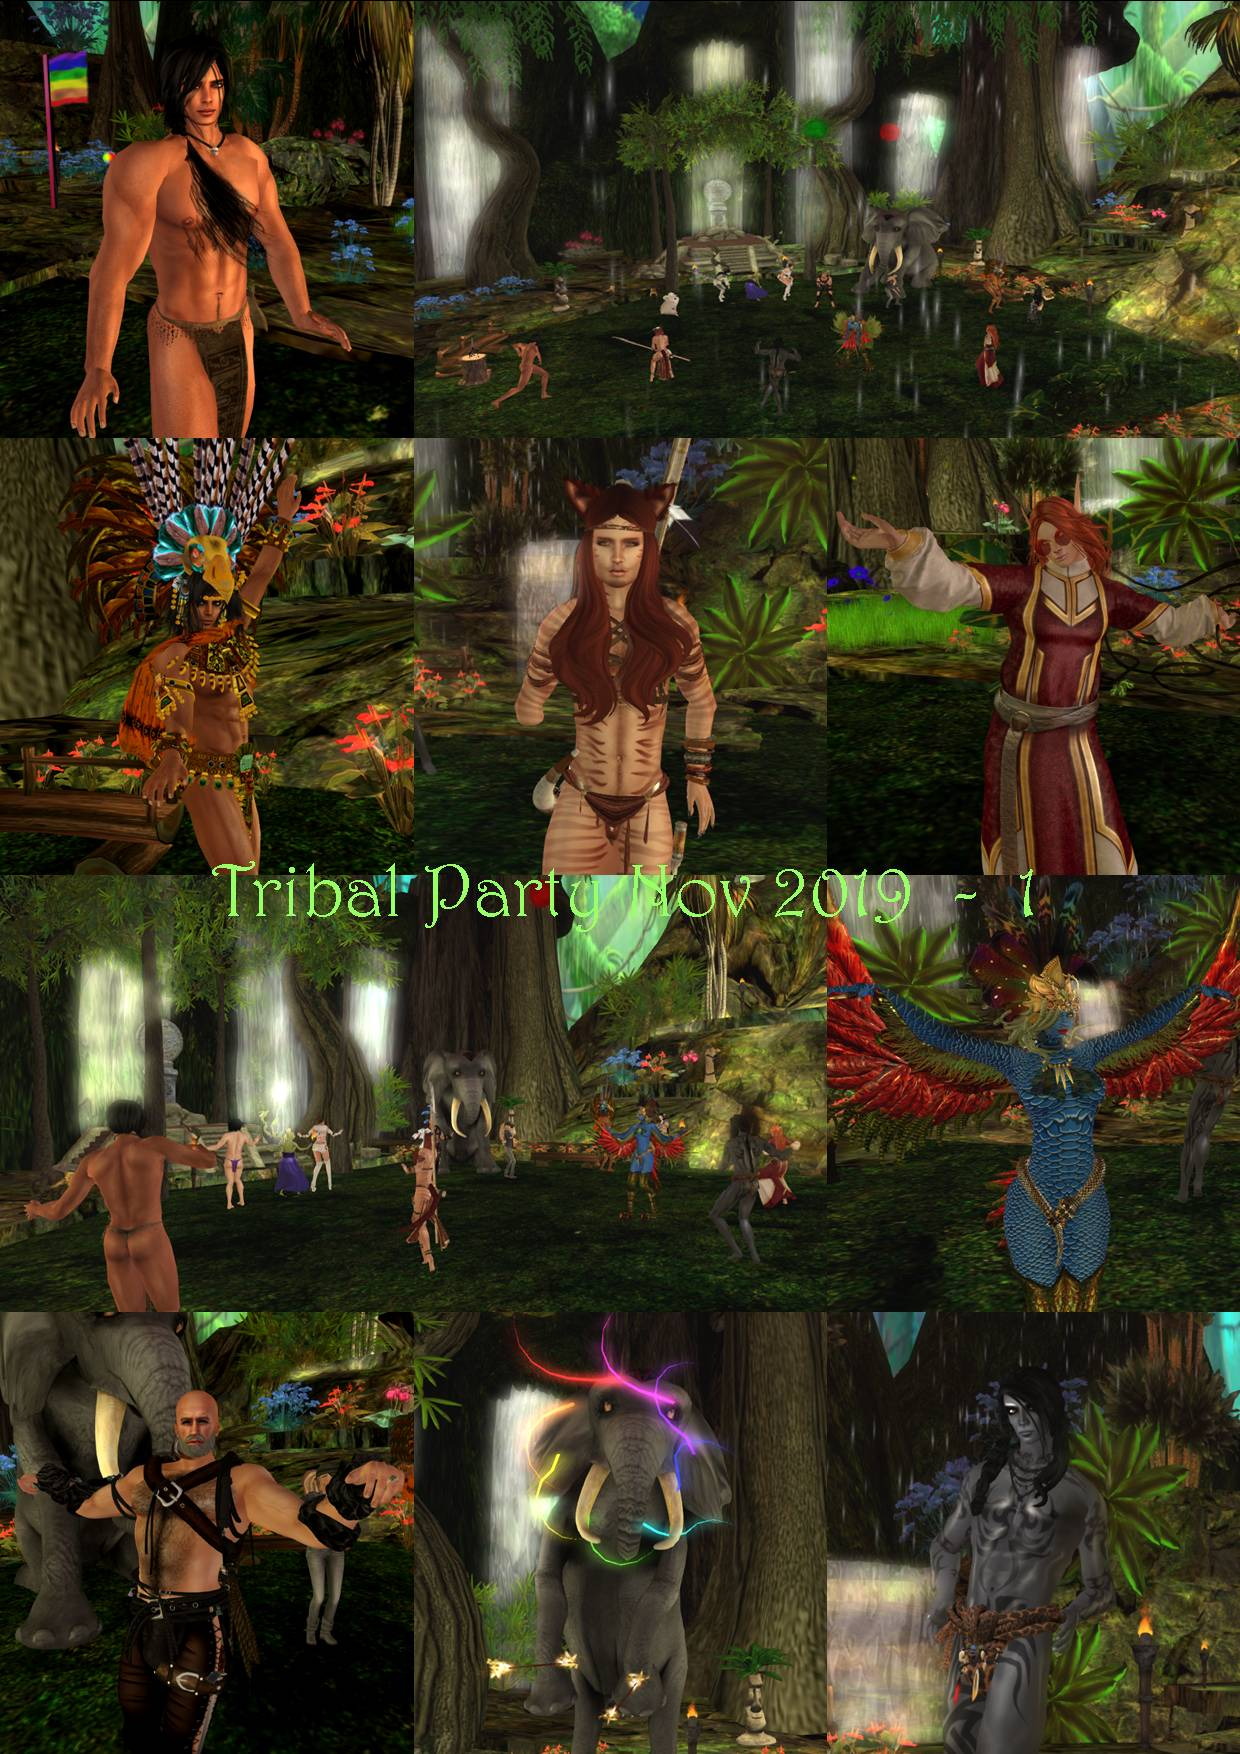 TRIBAL PARTY COLLAGE 2019 - 1